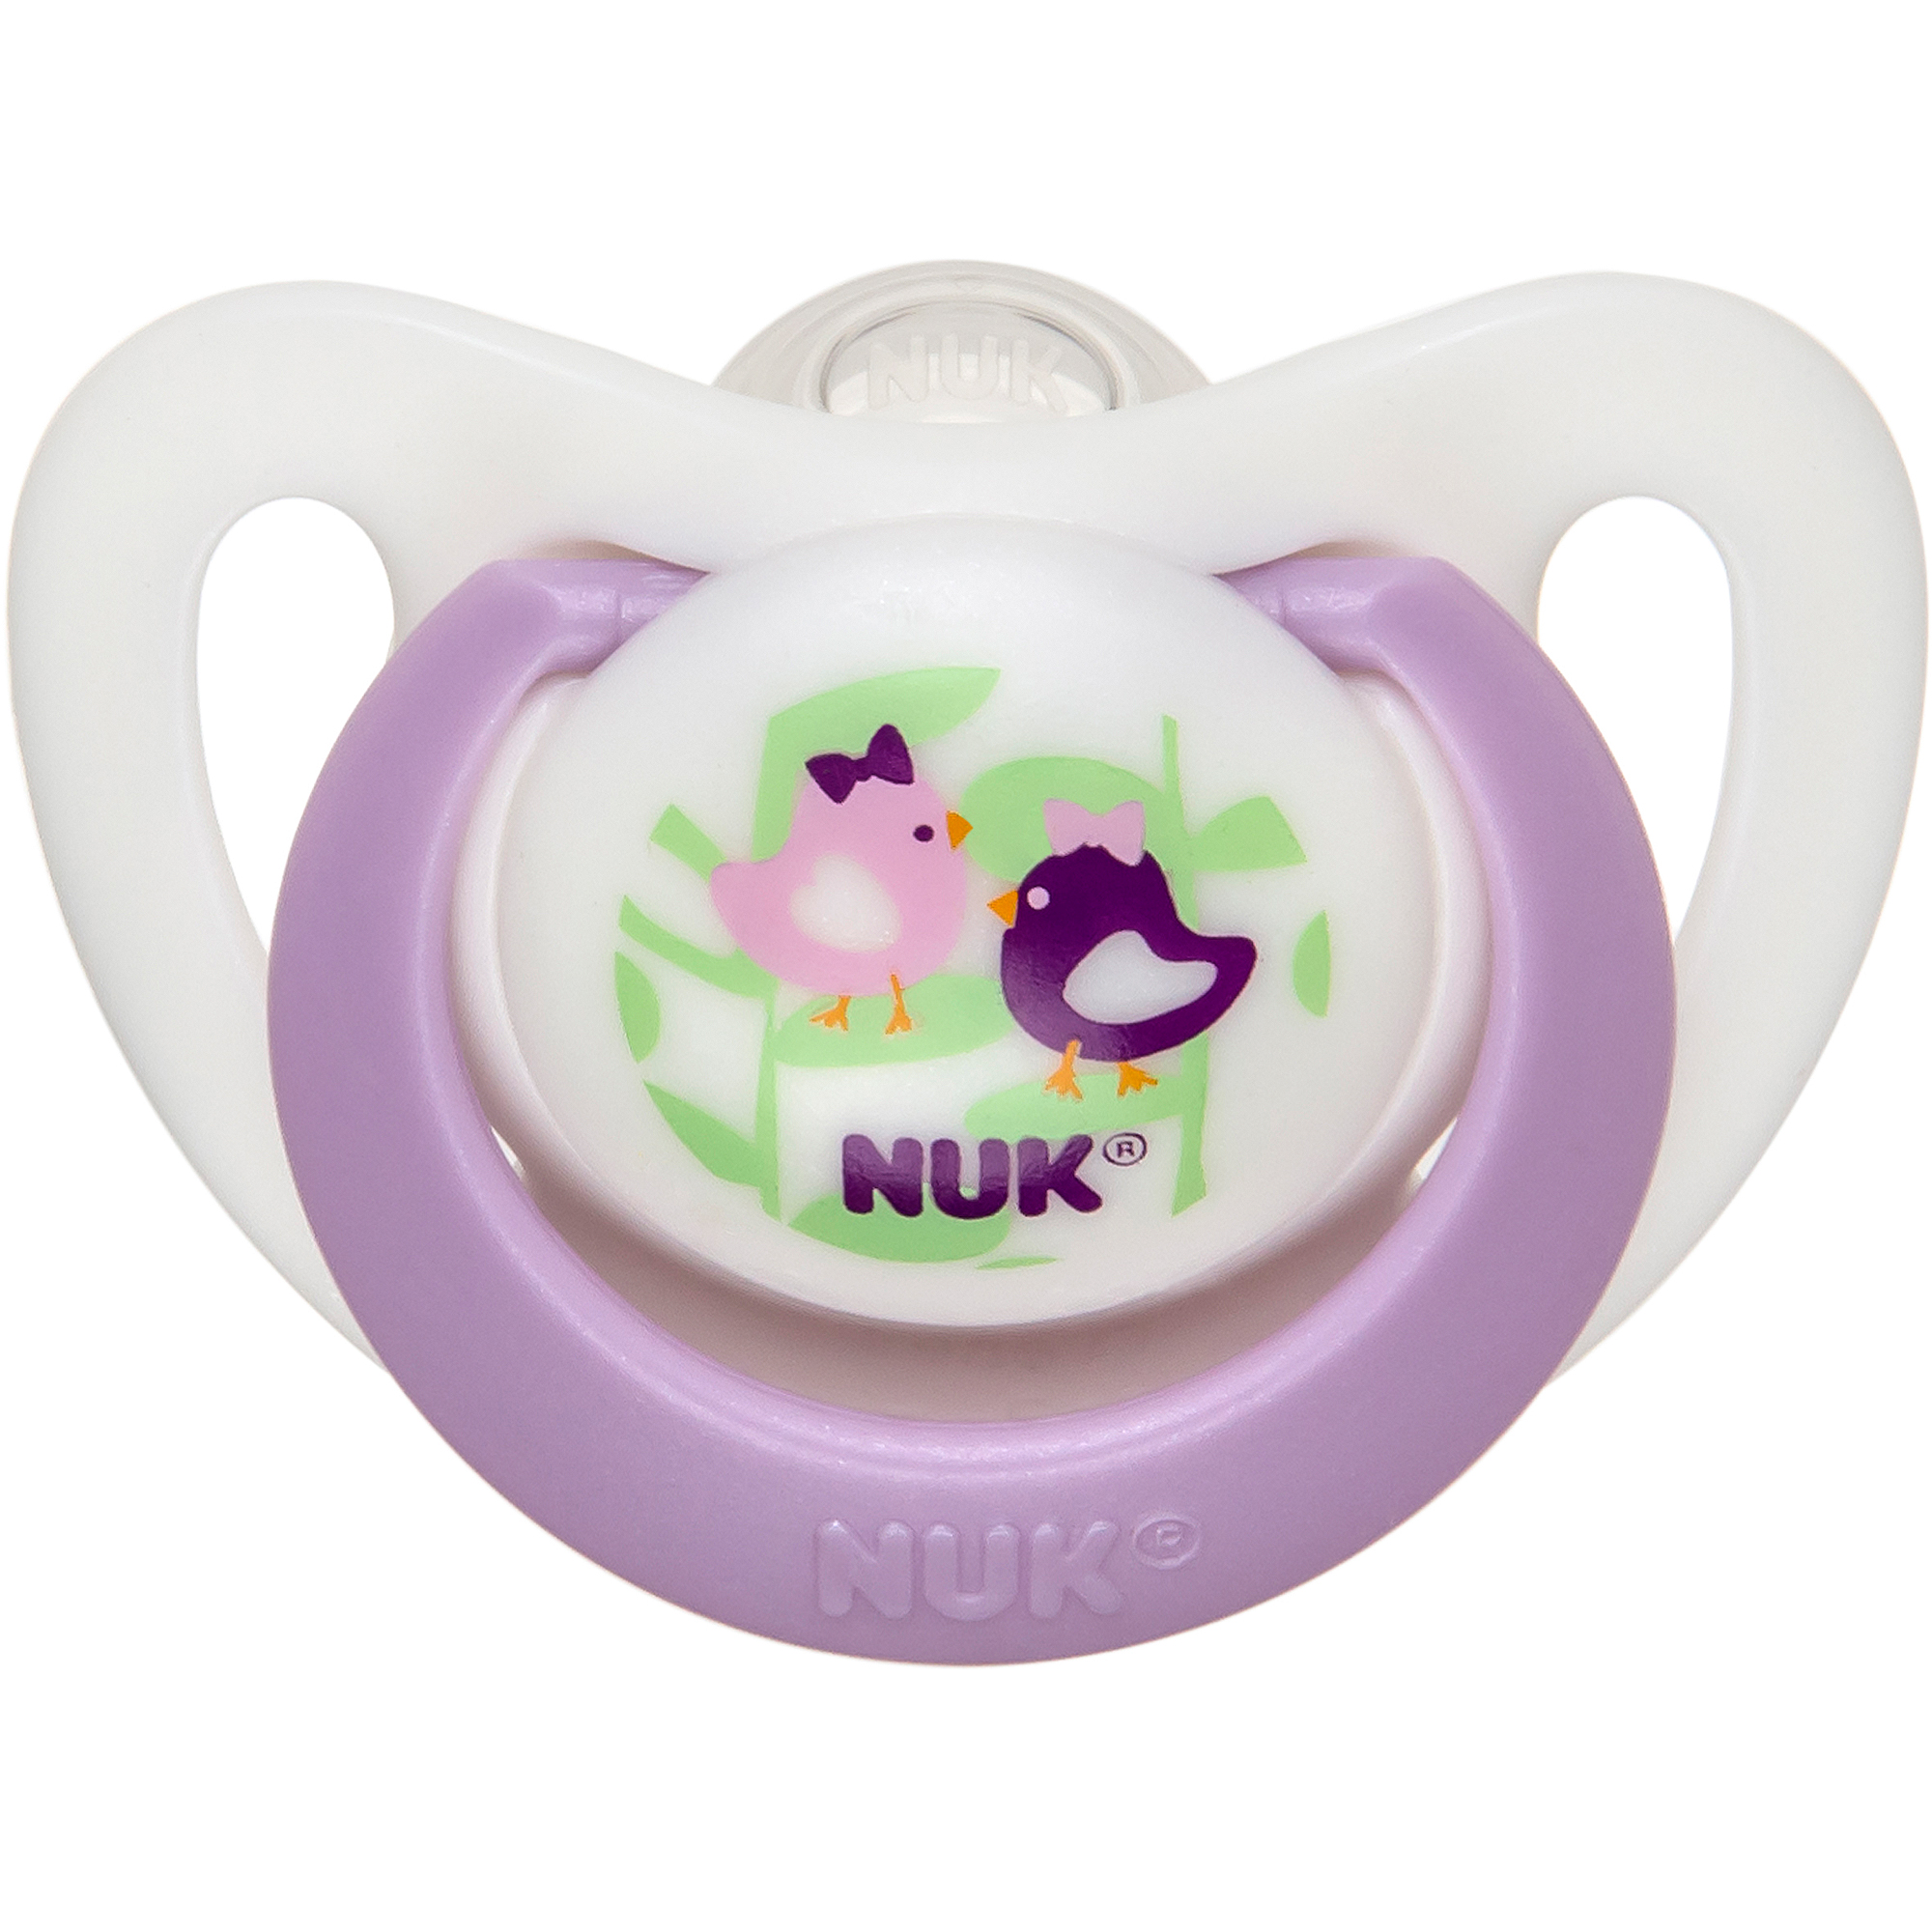 NUK Advanced Orthodontic Pacifiers, 0-2 Months, 2 count, BPA-Free (Colors May Vary)